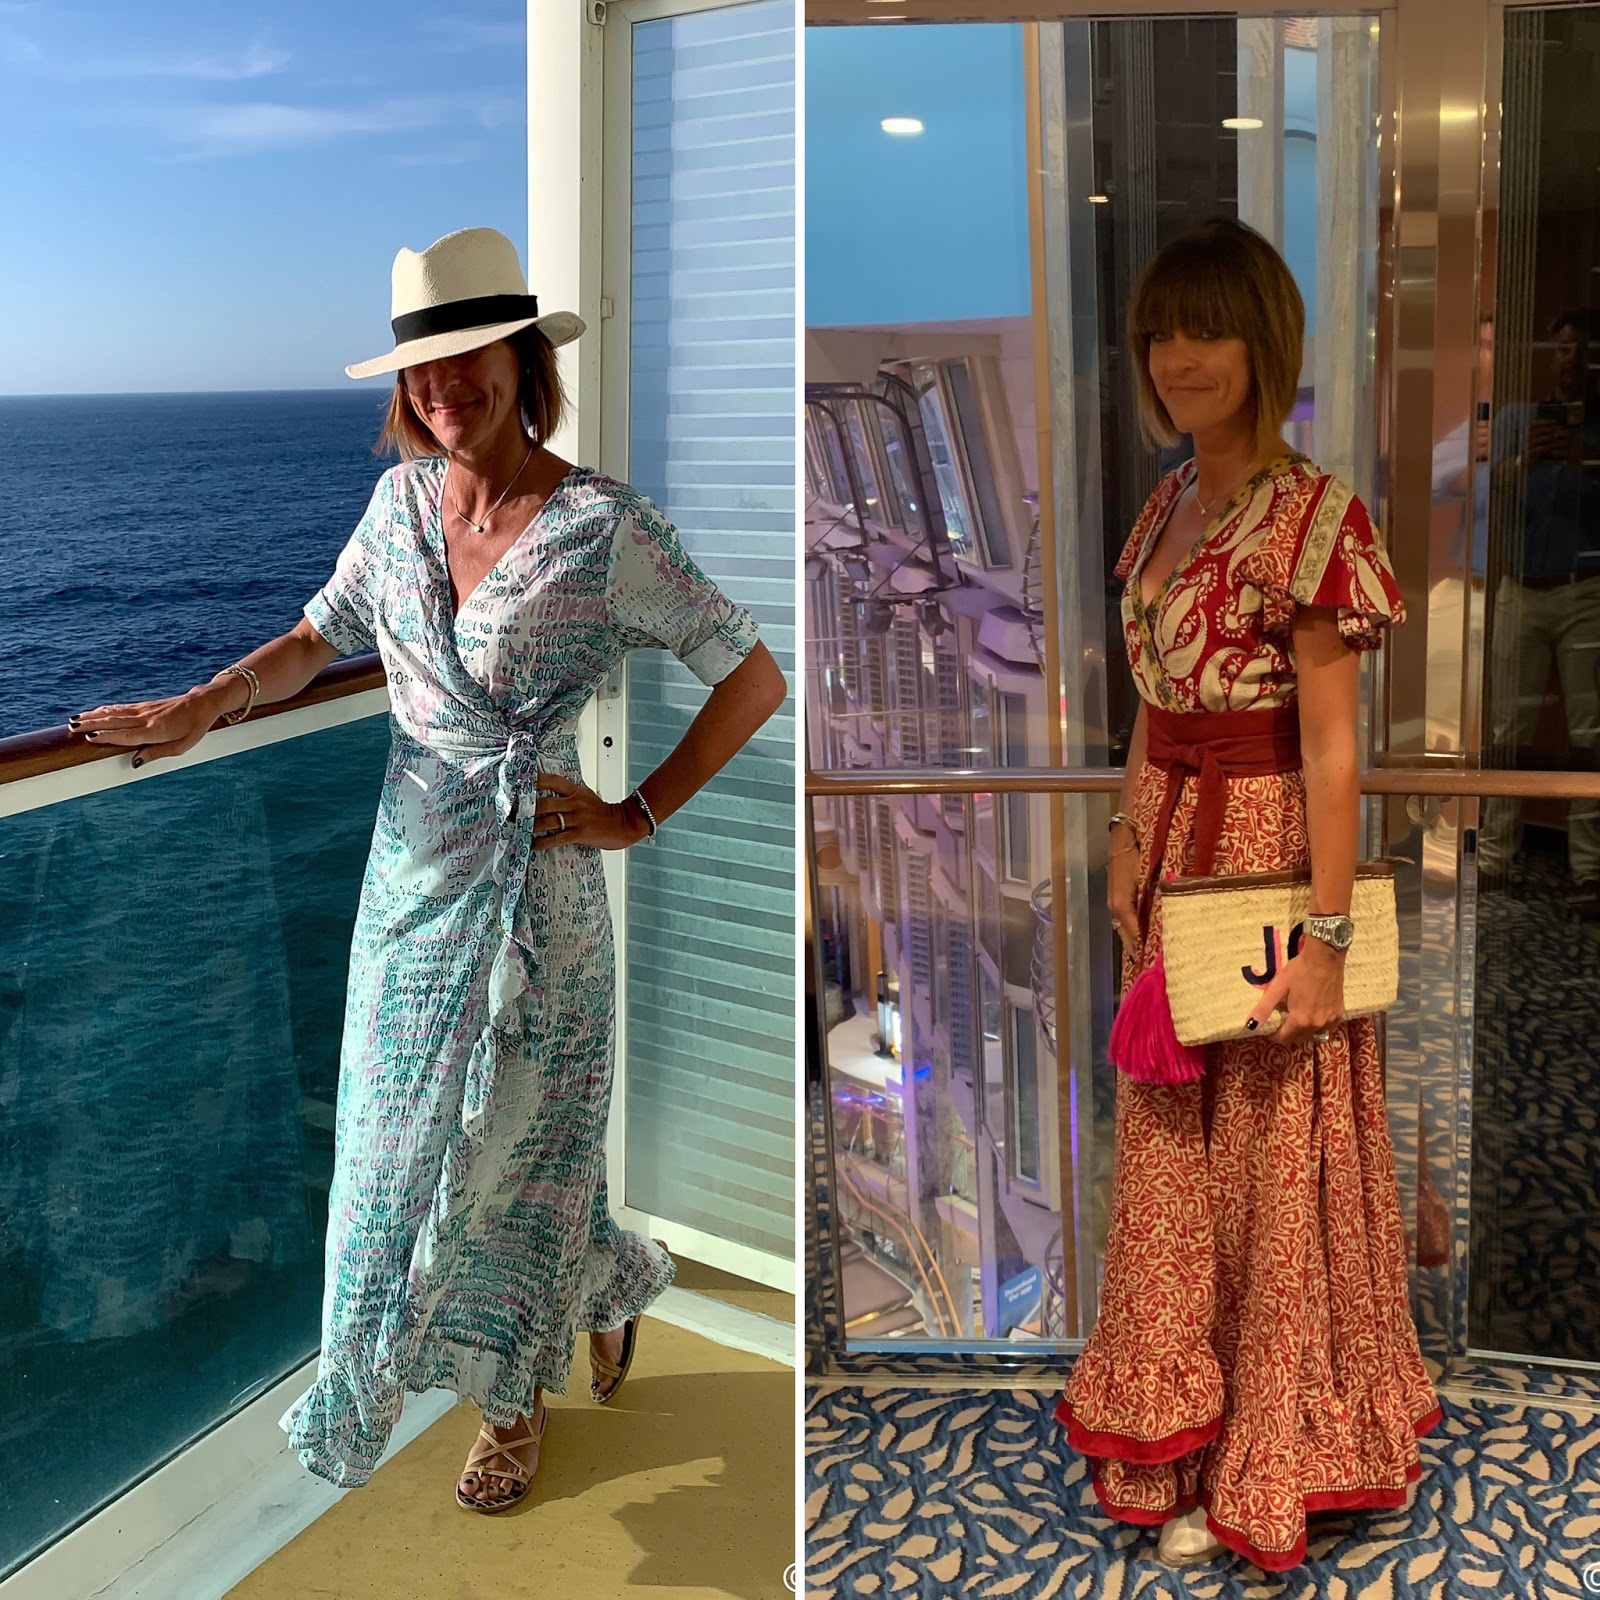 my midlife fashion, outfit inspiration, outfit ideas, holiday wardrobe, holiday outlits, looks for holiday, what to wear on holiday